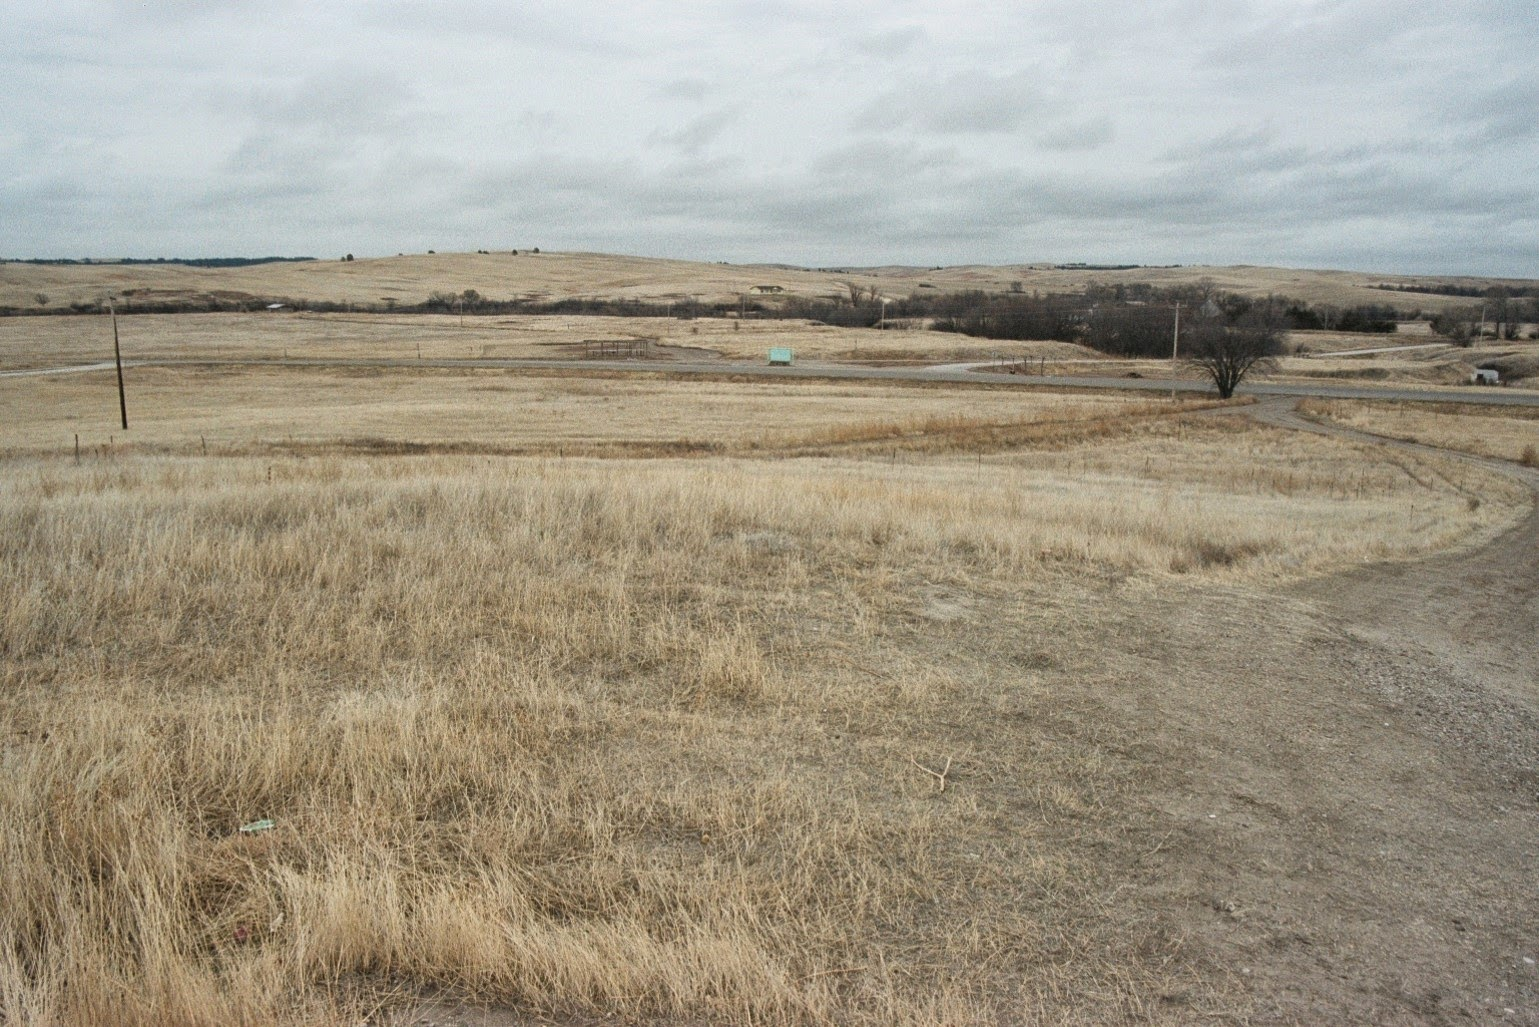 wounded knee essay Ask students to write an essay that explores the connection between the events at wounded knee in 1890 and in 1973, citing the sources in the set as evidence and using additional independent research as well.